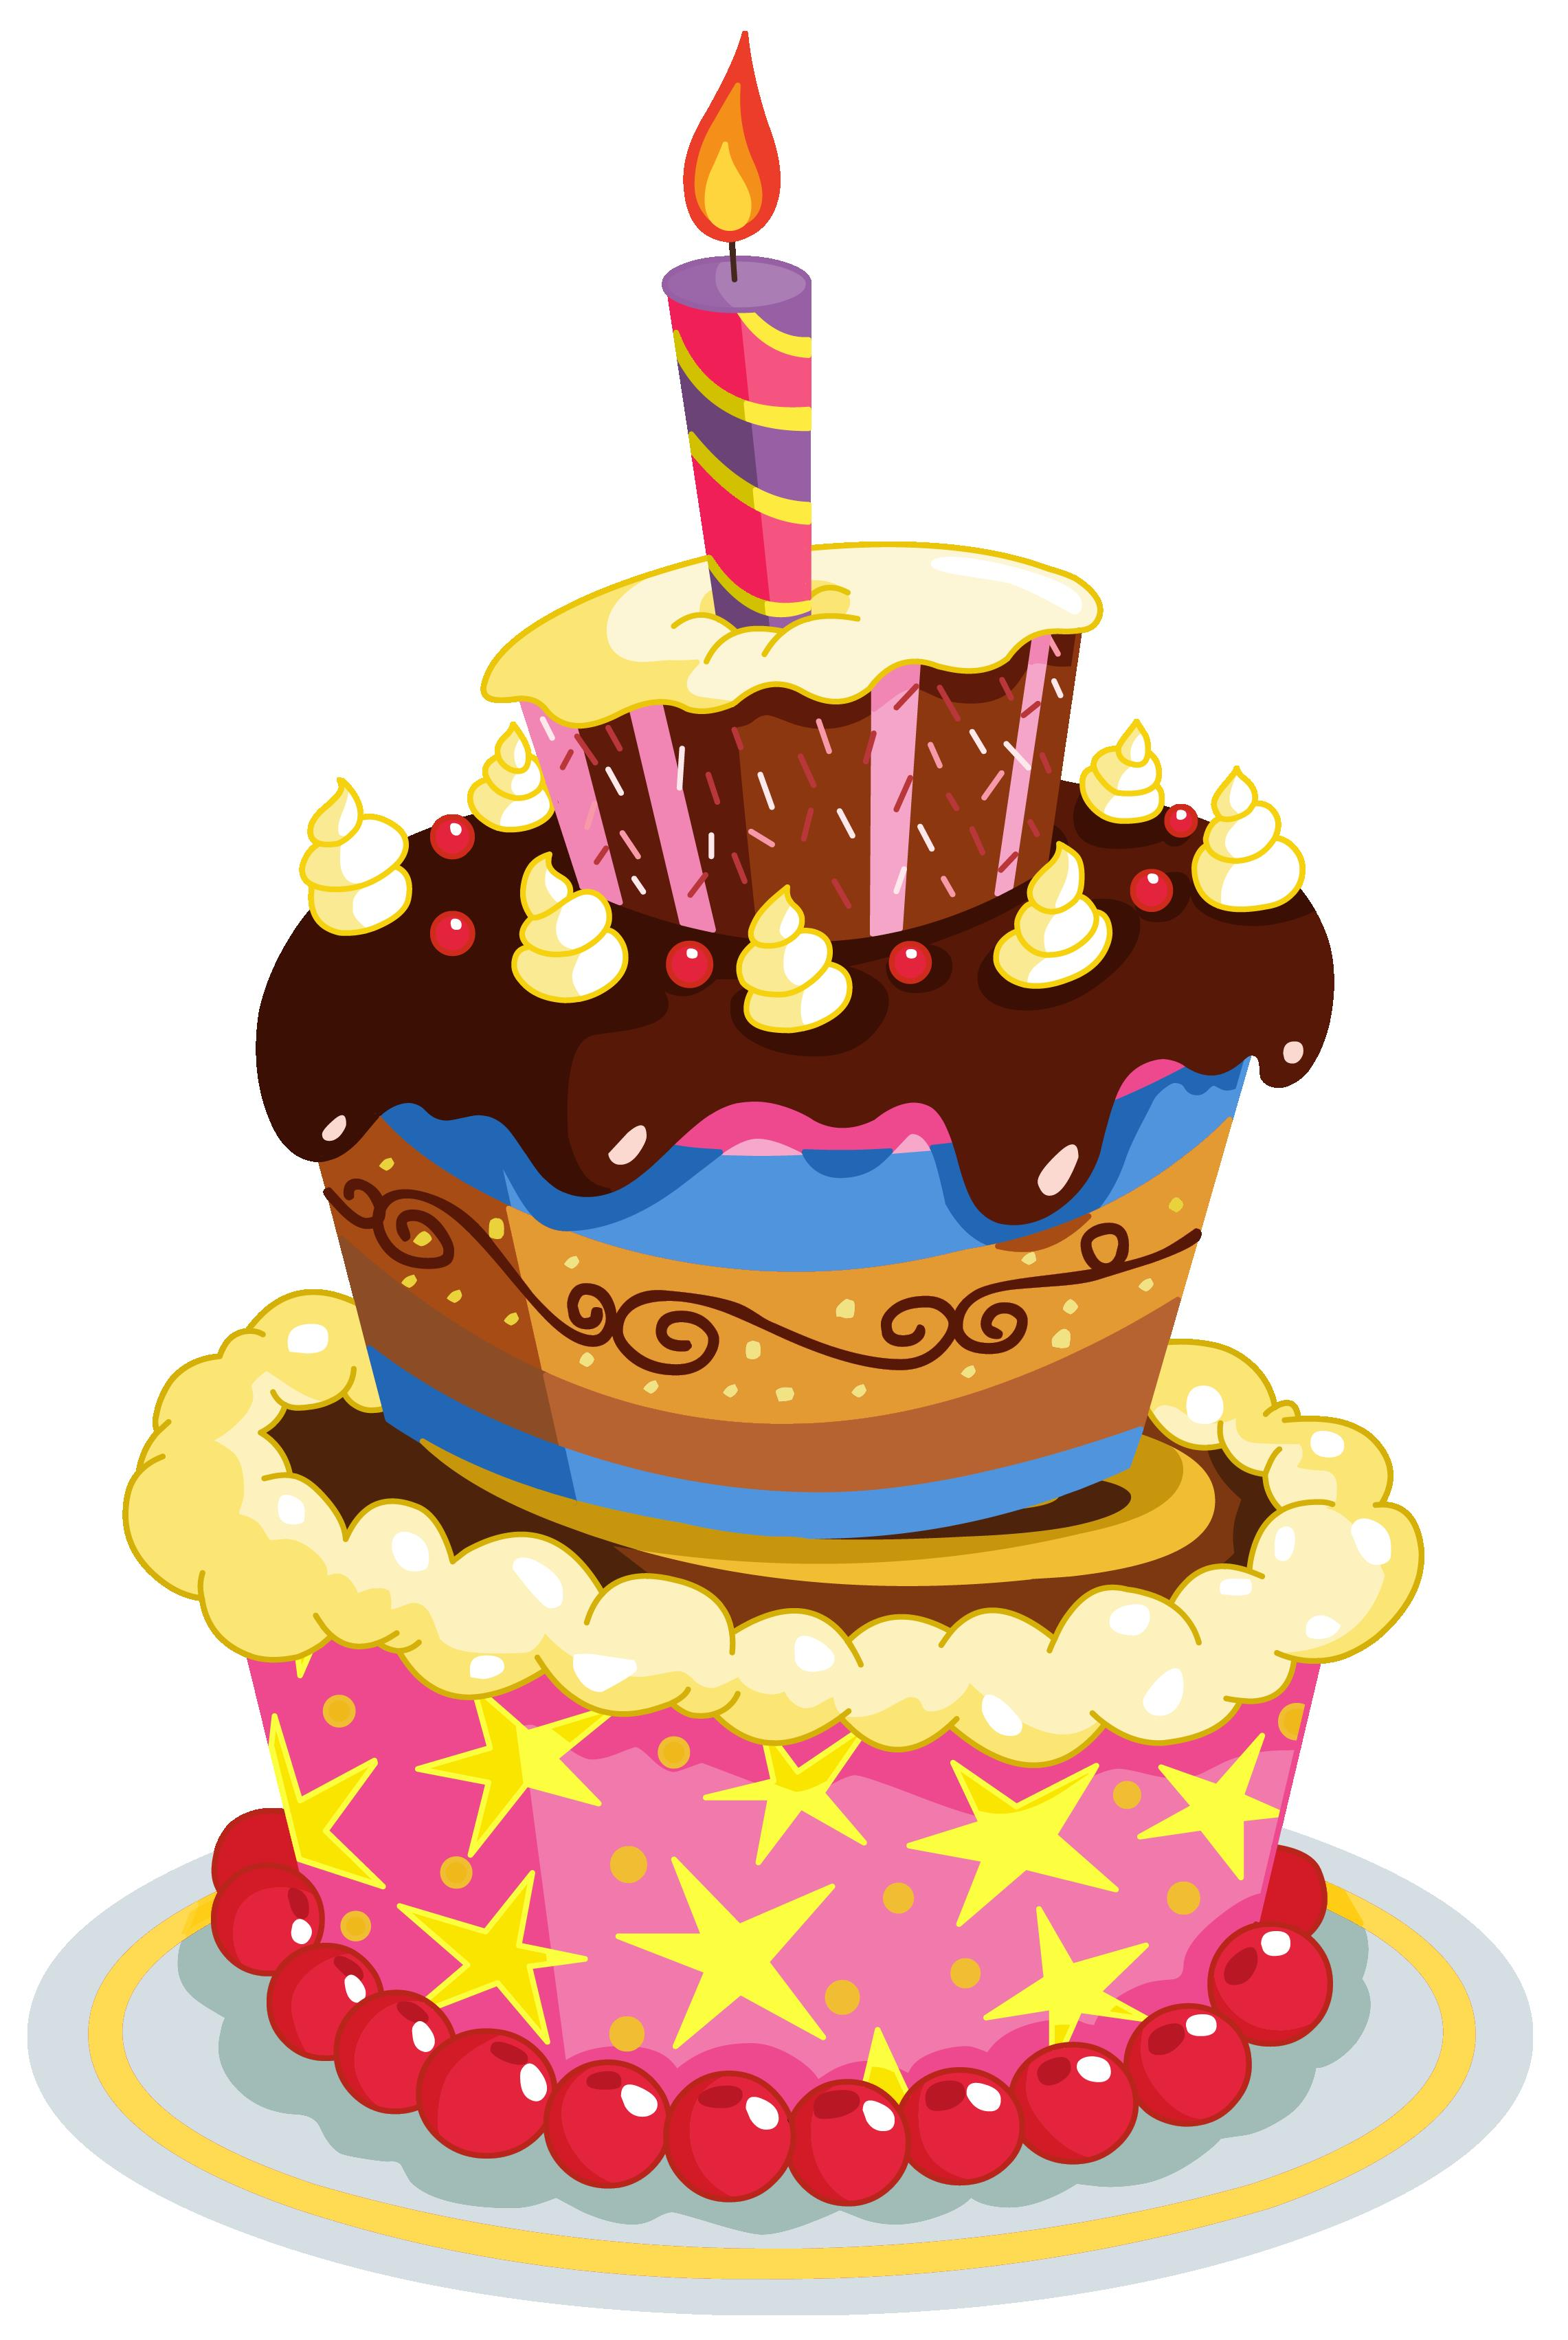 bday cake clipart ; Colorful-birthday-cake-clipart-happy